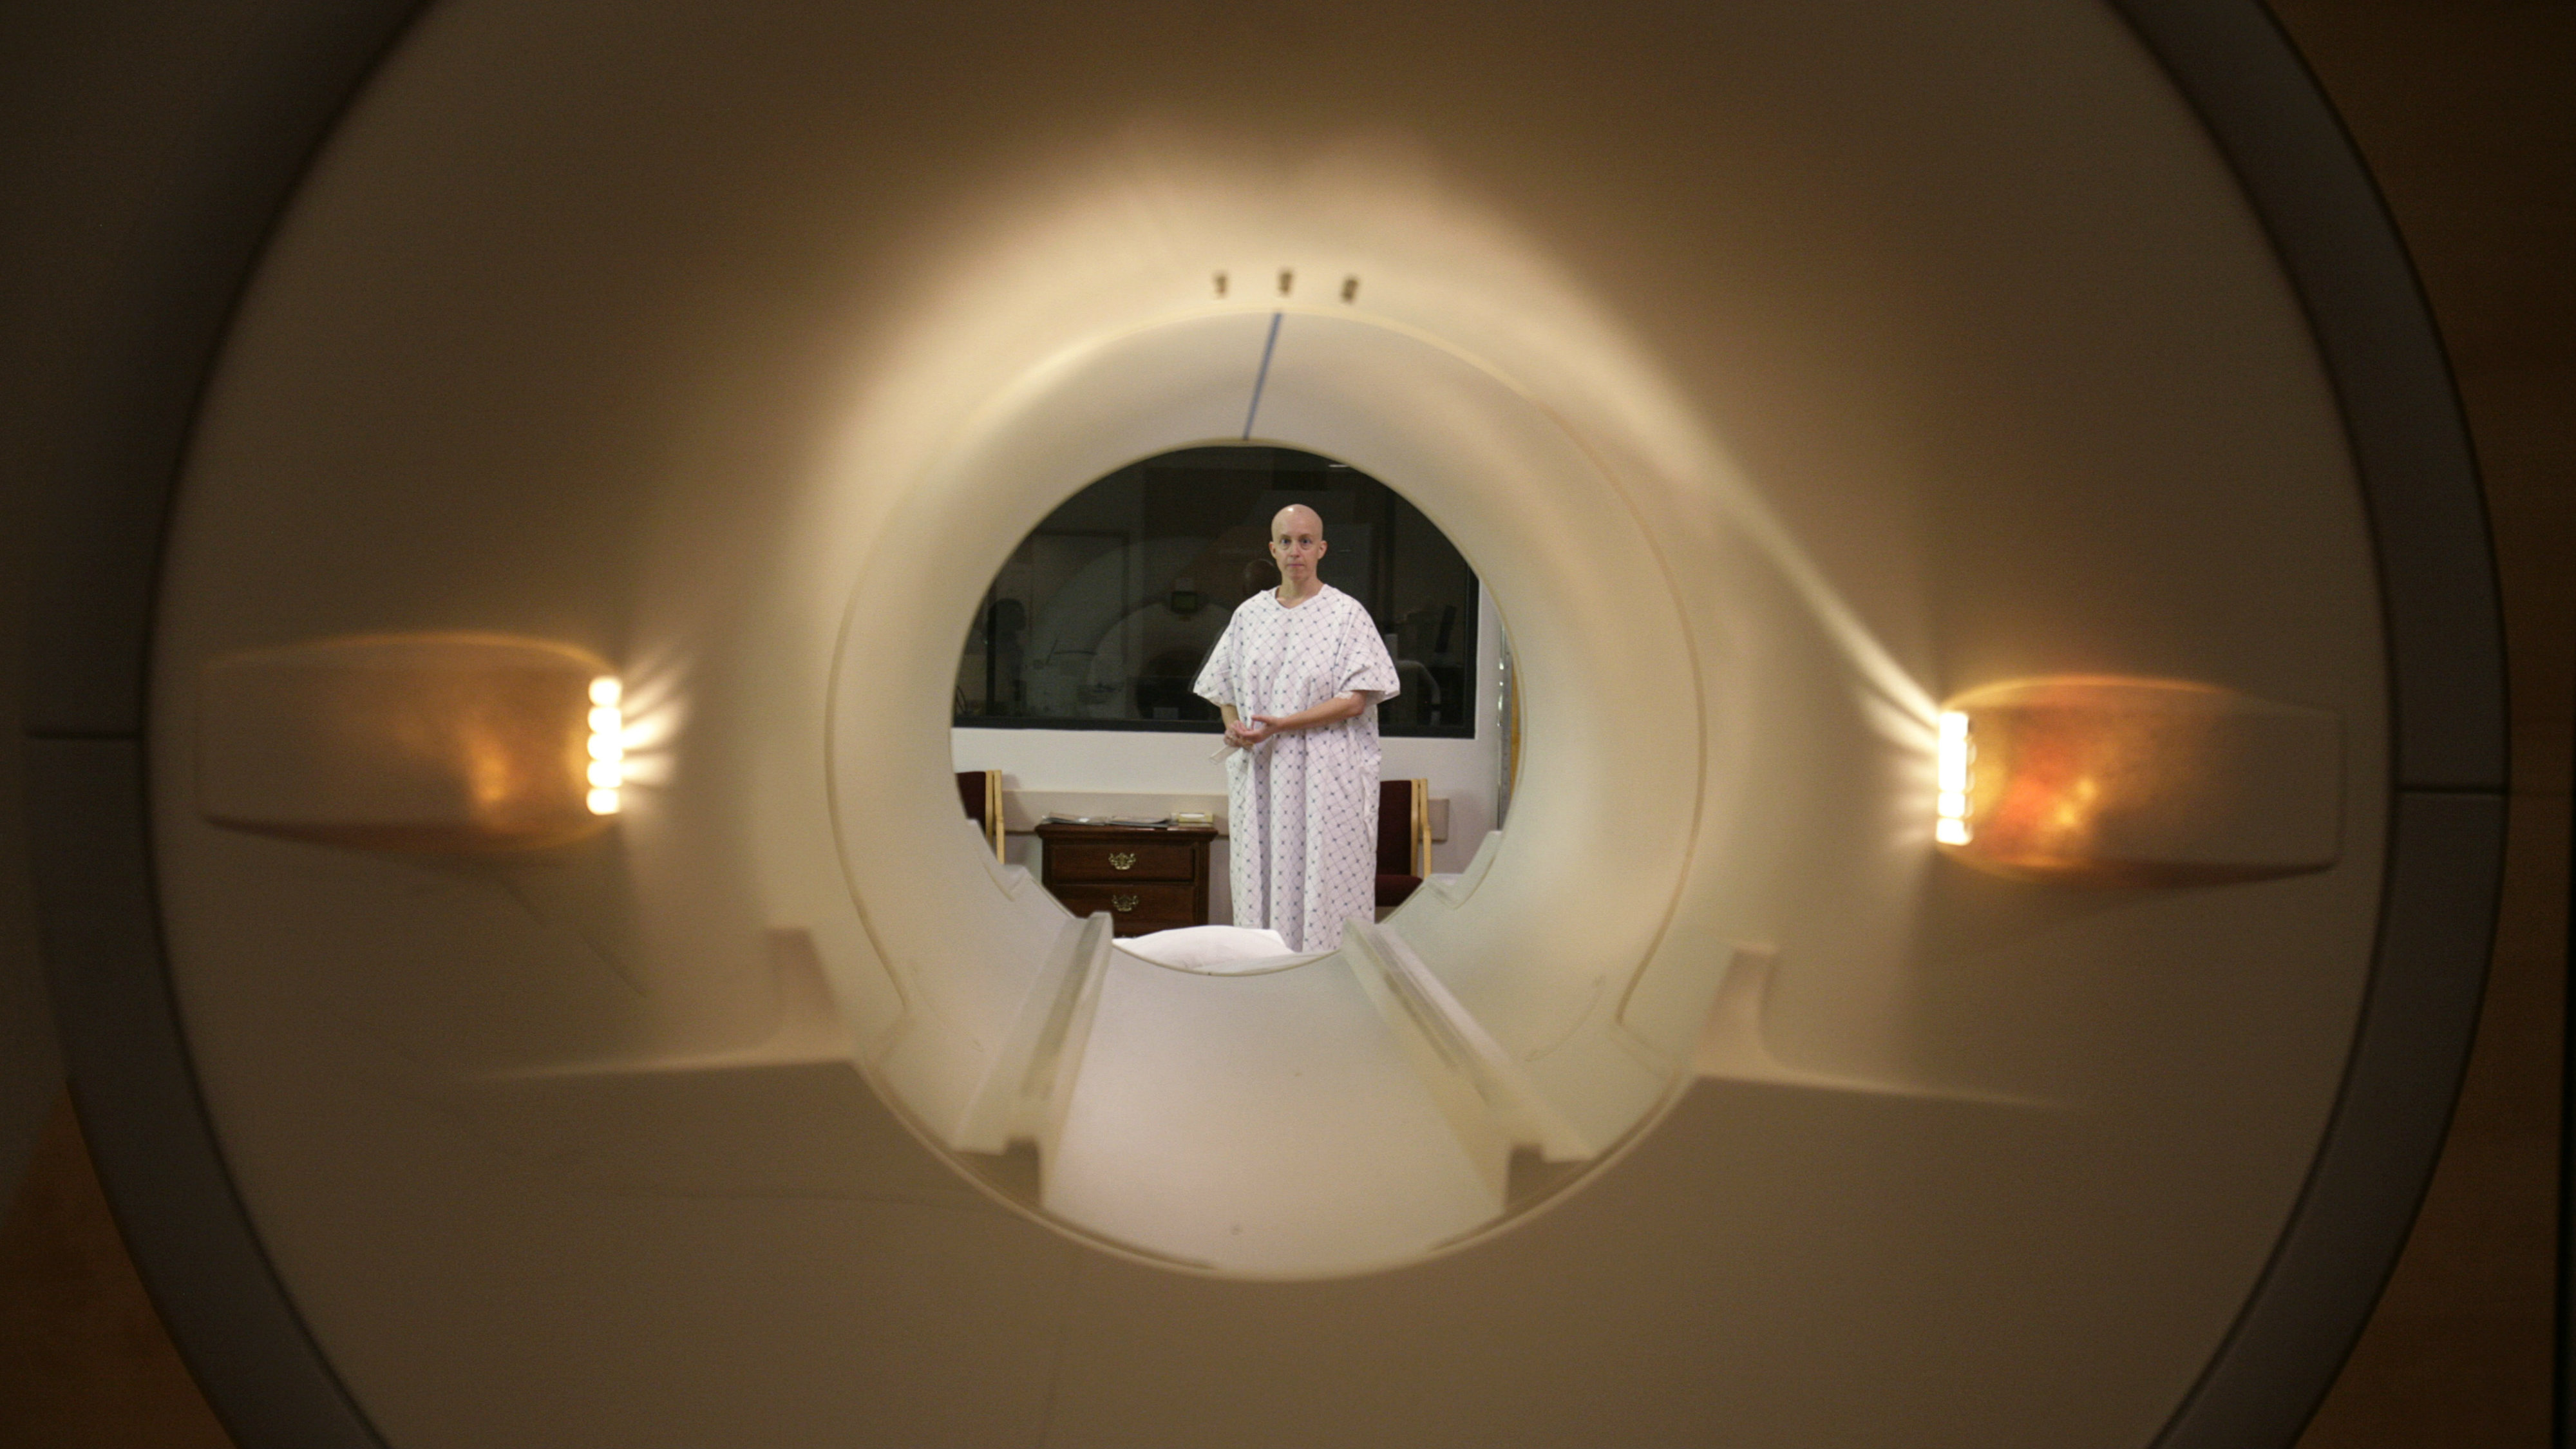 Cancer patient Deborah Charles is seen through the tube of a magnetic resonance imaging scanner as she prepares to enter the MRI machine for an examination at Georgetown University Hospital in Washington May 23, 2007. Like many cancer patients, Charles now spends many of her days going for medical appointments, treatments and examinations. Photo taken May 23, 2007.